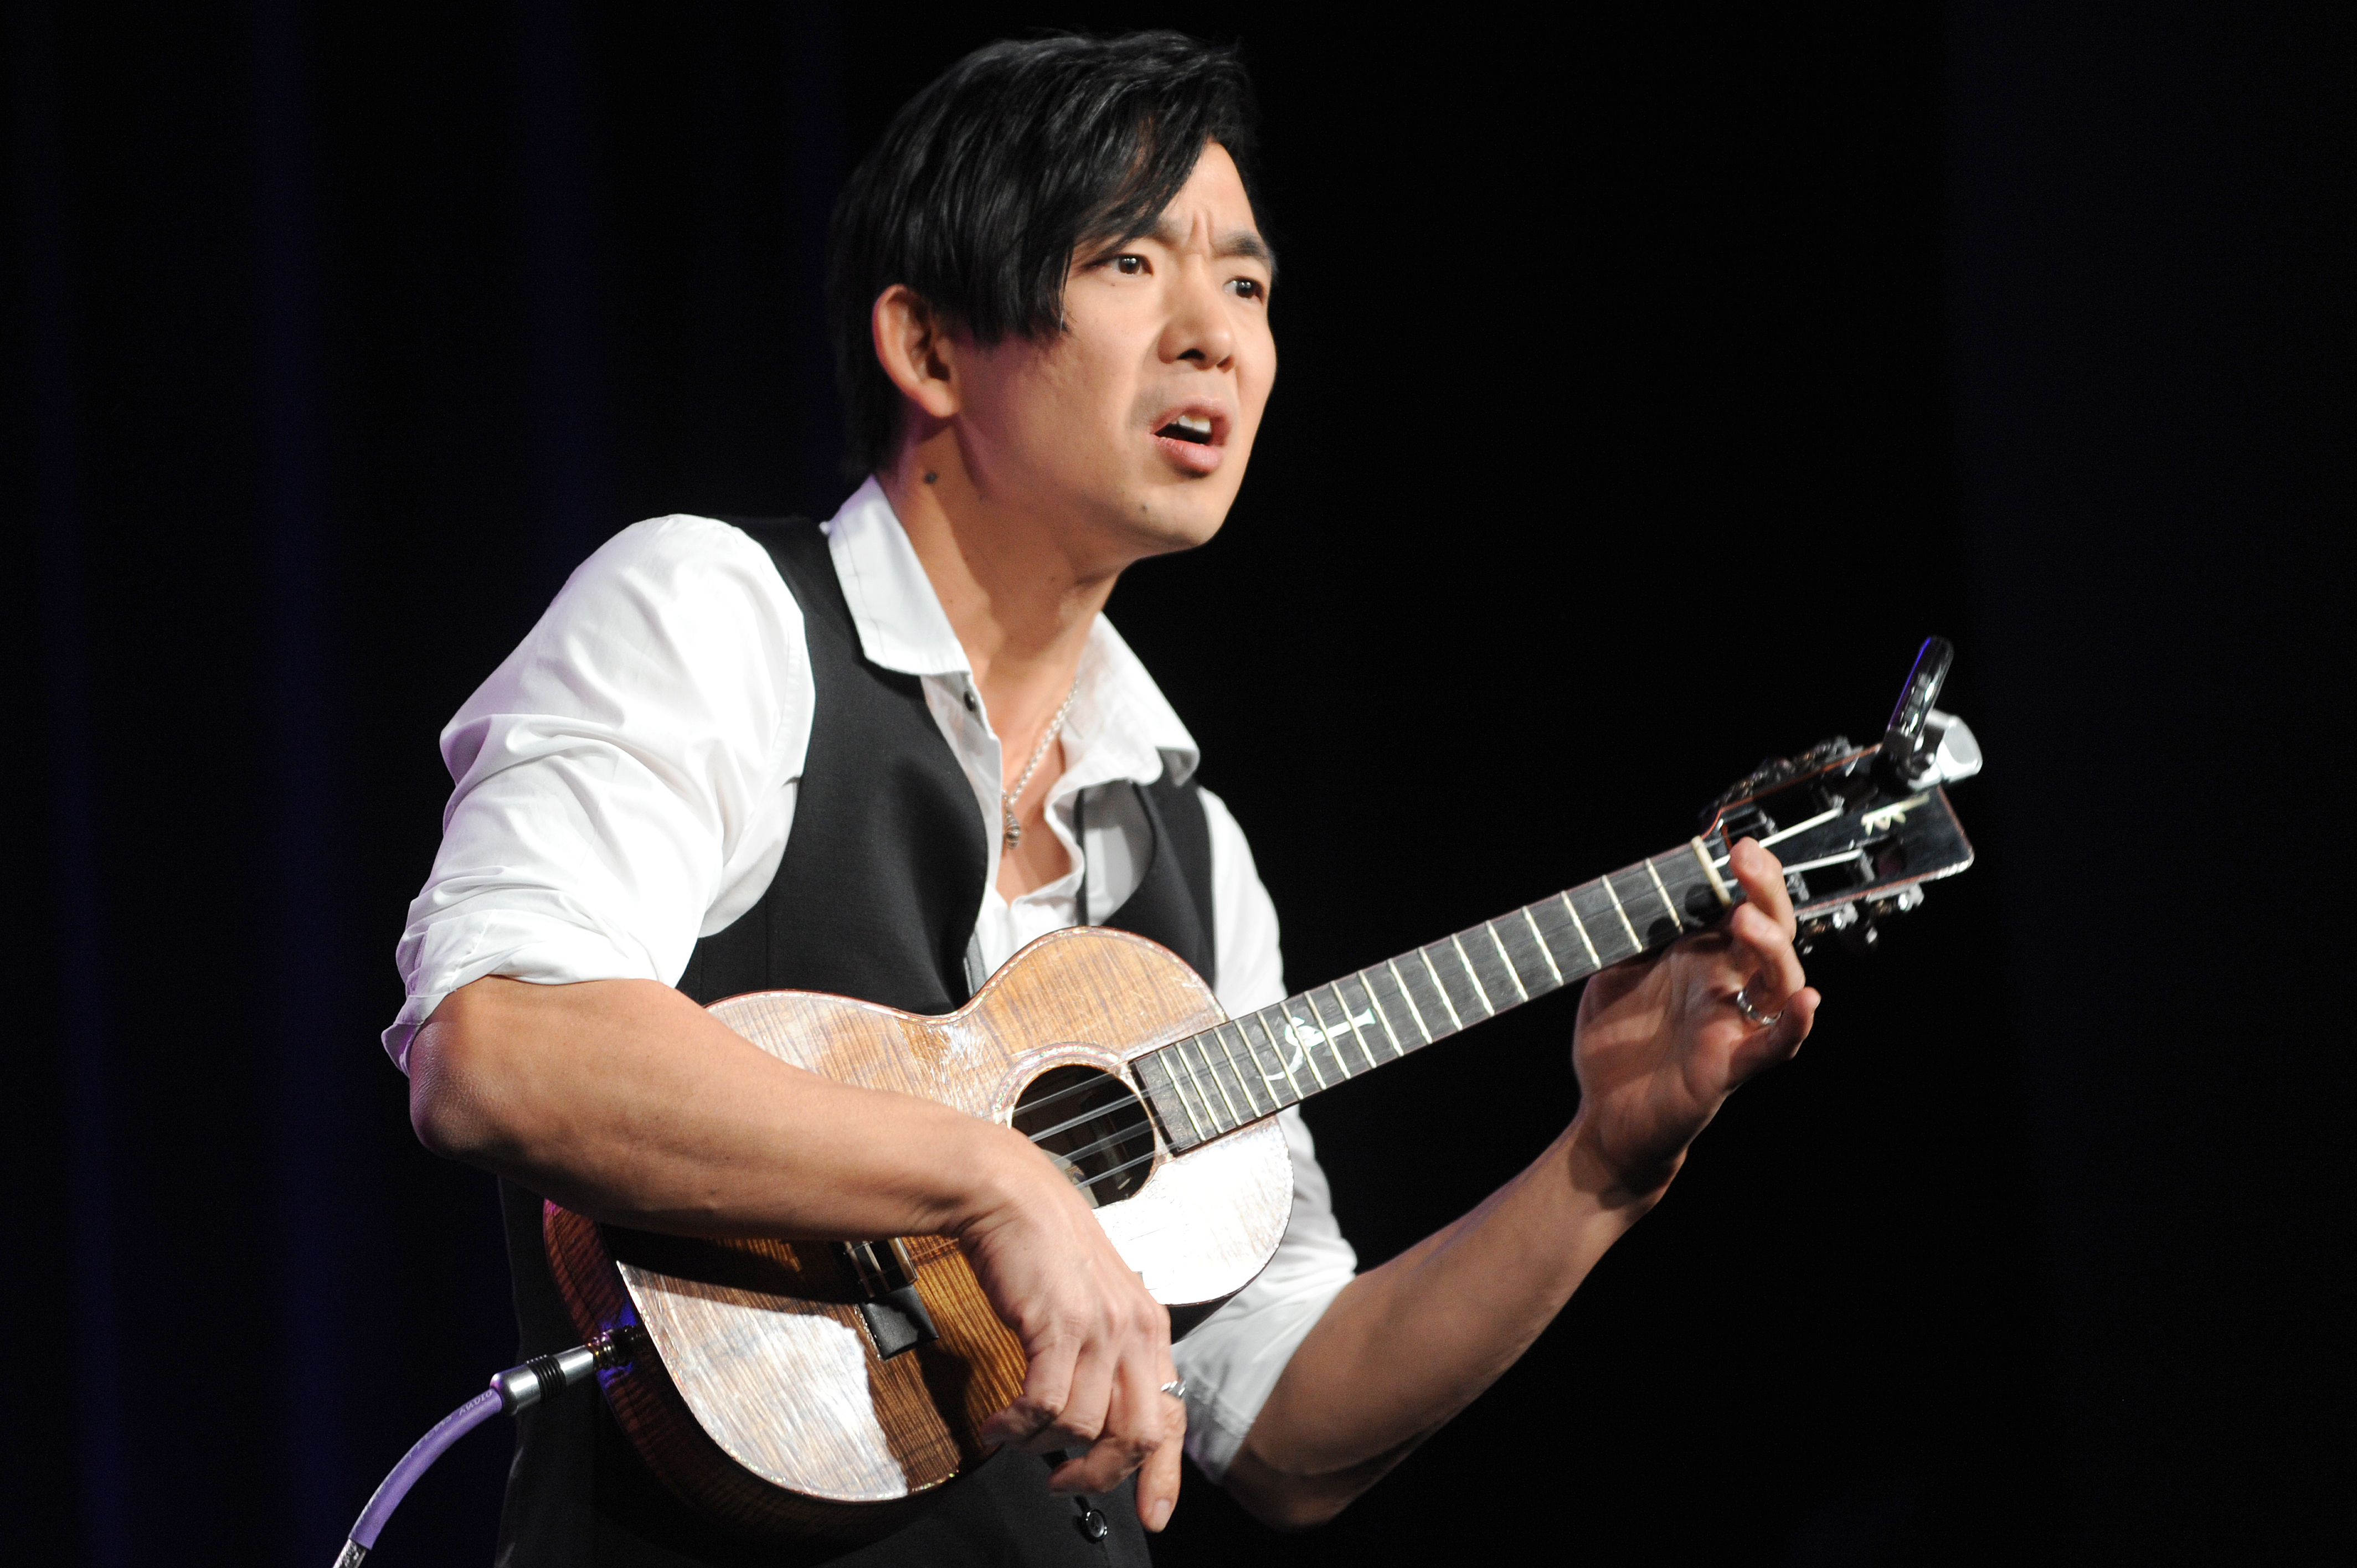 Jake Shimabukuro performs during the PBS Winter TCA Tour at the Langham Huntington Hotel on Tuesday, Jan. 15, 2013, in Pasadena, Calif. Shimabukuro will appear at this year's RootsTech, scheduled for Feb. 27-March 2 at the Salt Palace Convention Center.